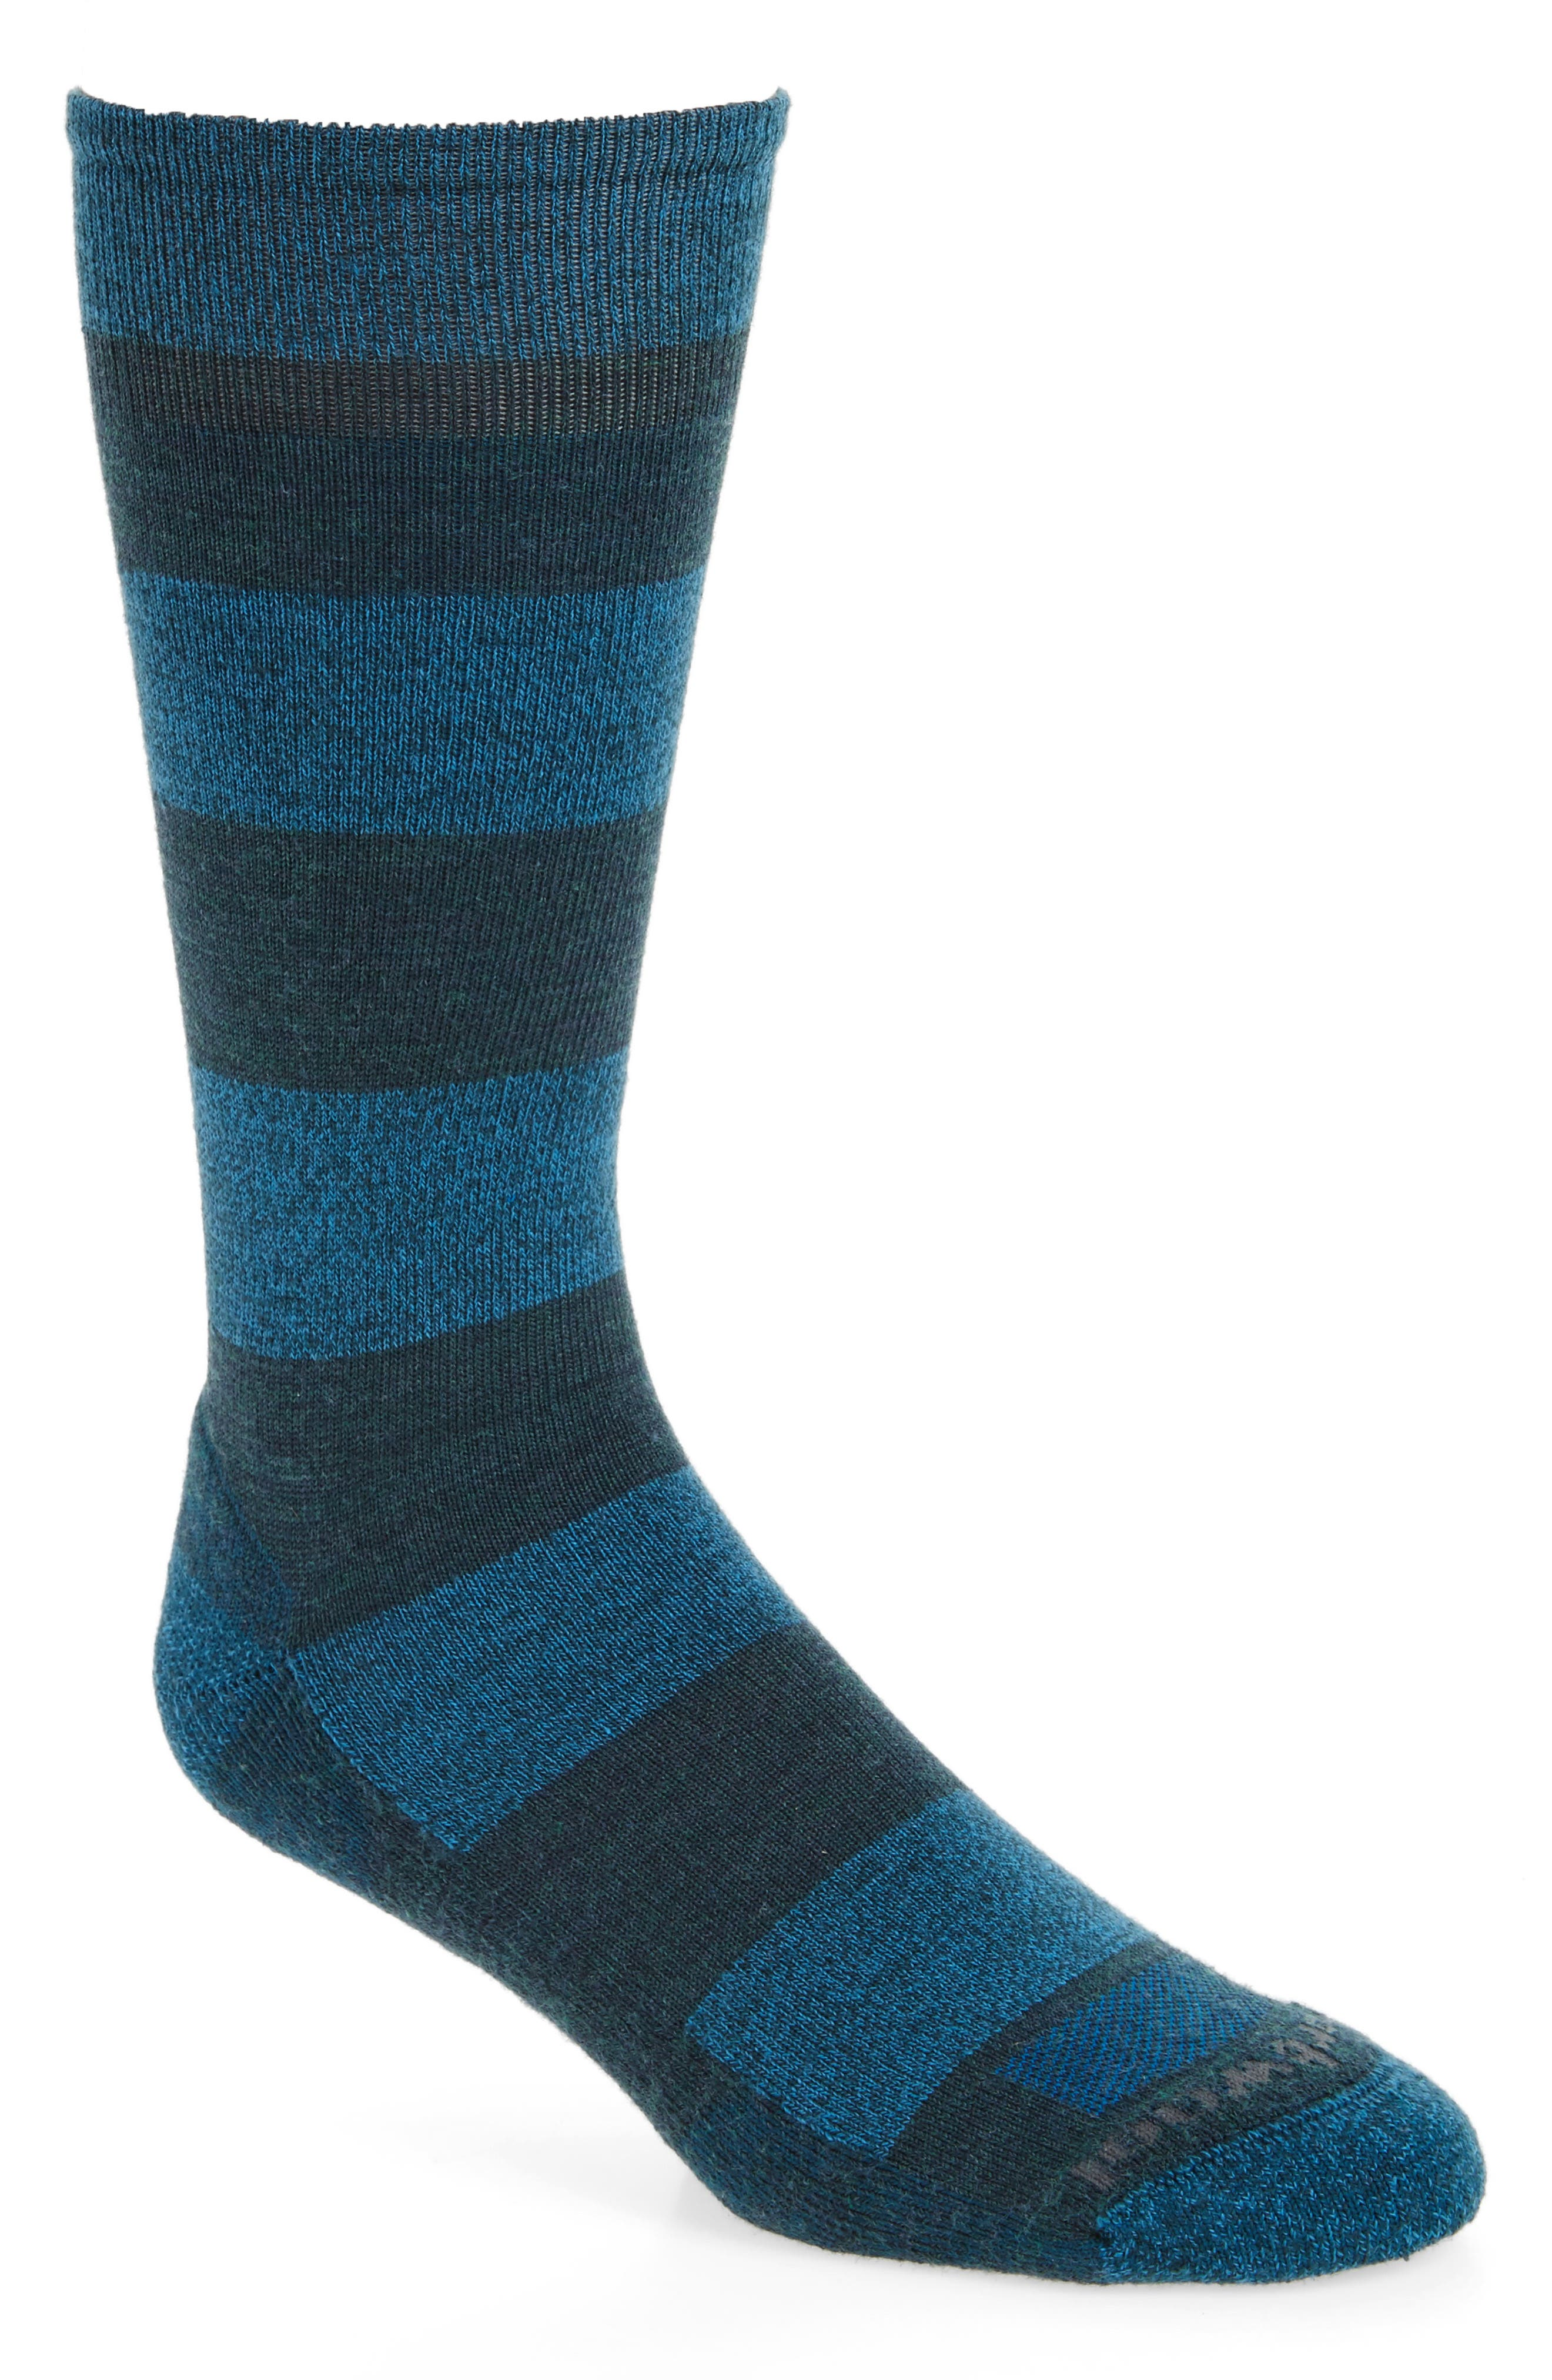 Gimsby Stripe Socks,                             Main thumbnail 1, color,                             Lochness Heather